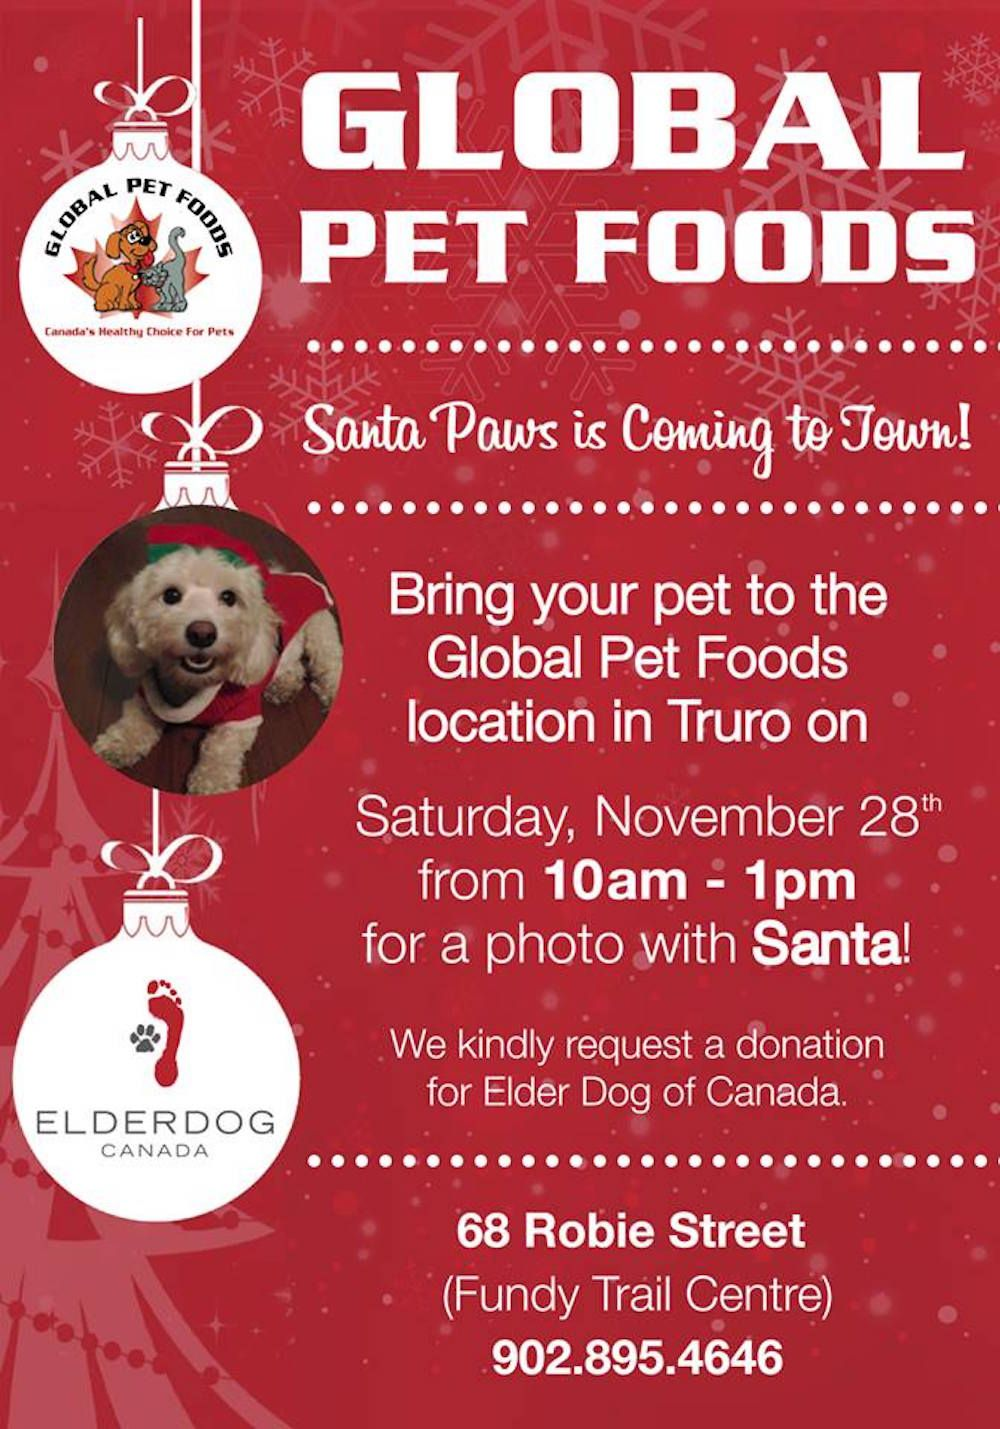 SAVE THE DATE! Santa will be visiting for photos with your